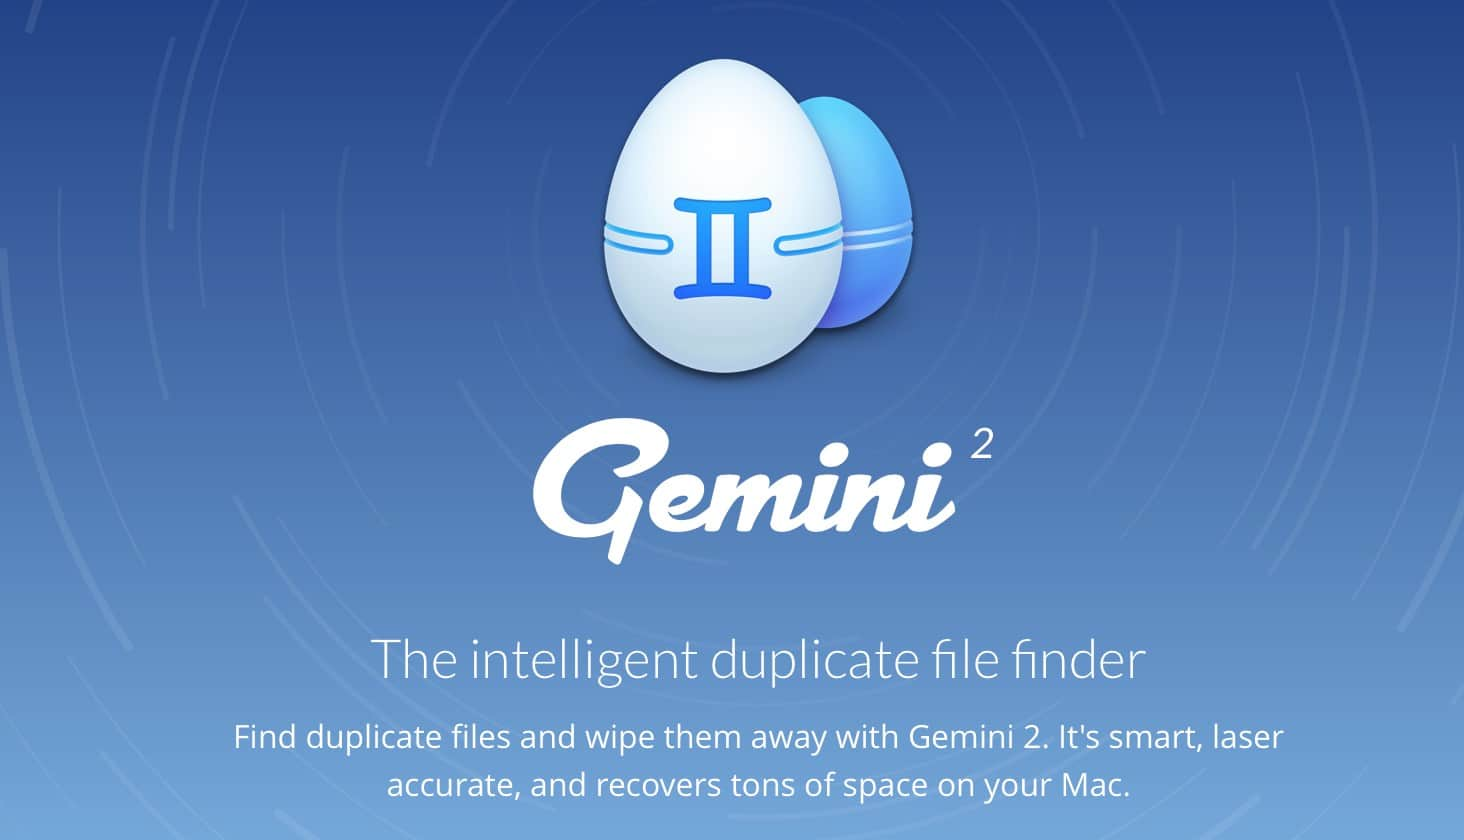 Gemini 2 Gemini 2 Review Helps You Find And Delete Duplicate Files On A Mac